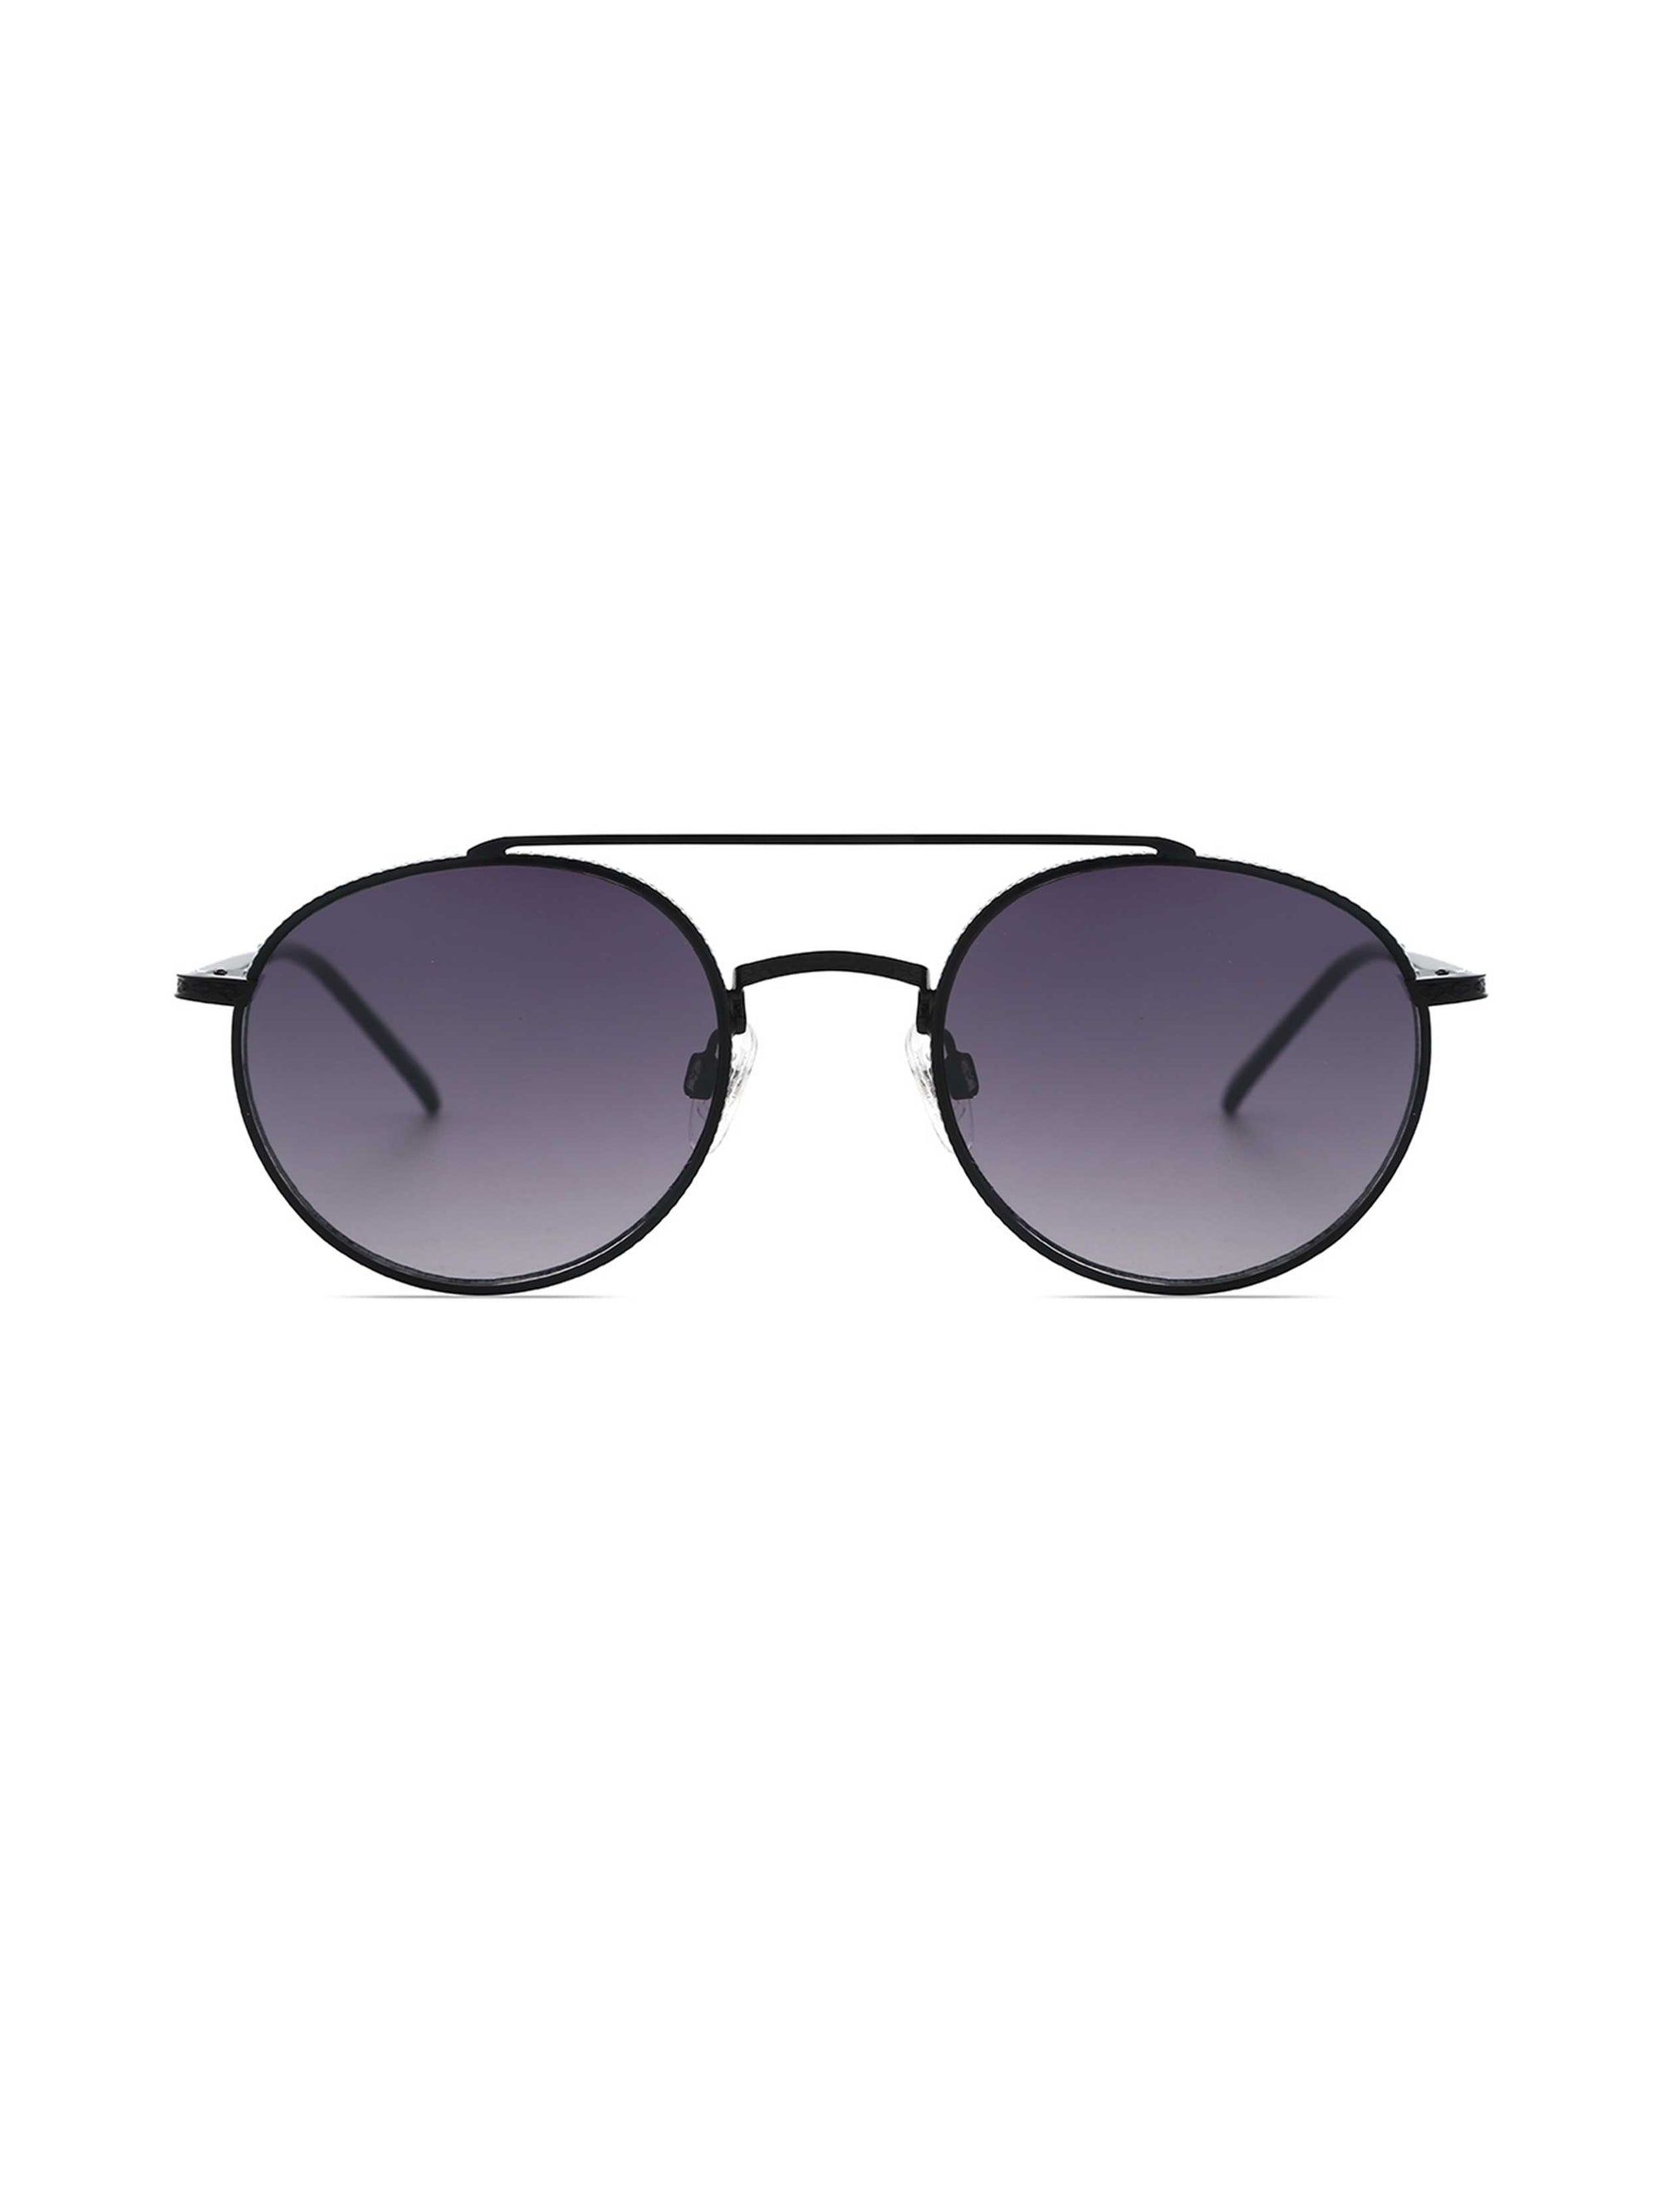 Lentes Carolina Lemke CL6561 04